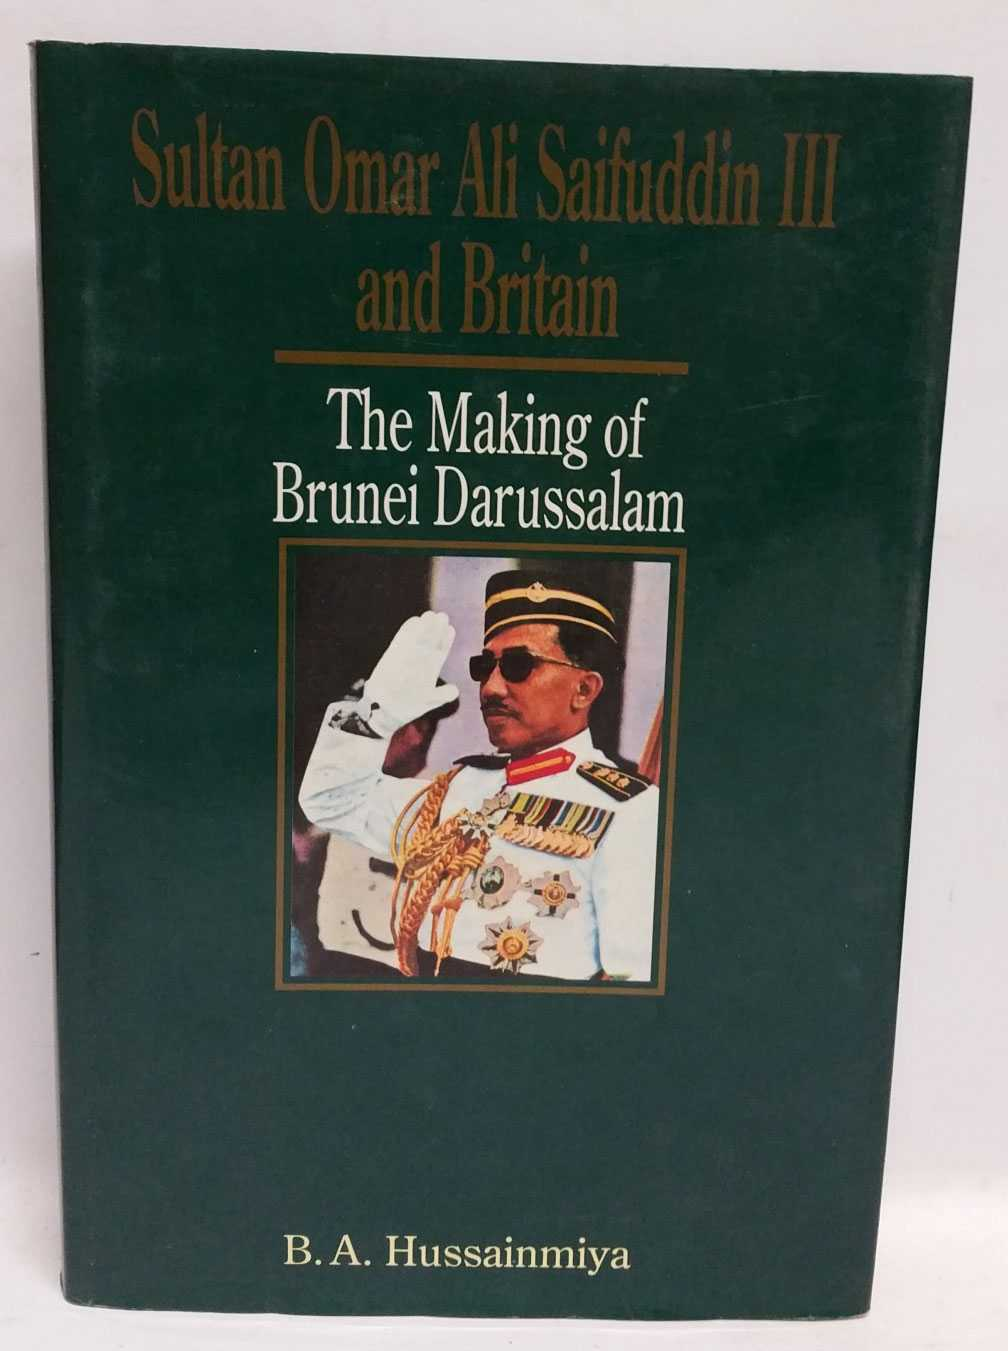 Sultan Omar Ali Saifuddin III and Britain: The Making of Brunei Darussalam, B. A. Hussainmiya